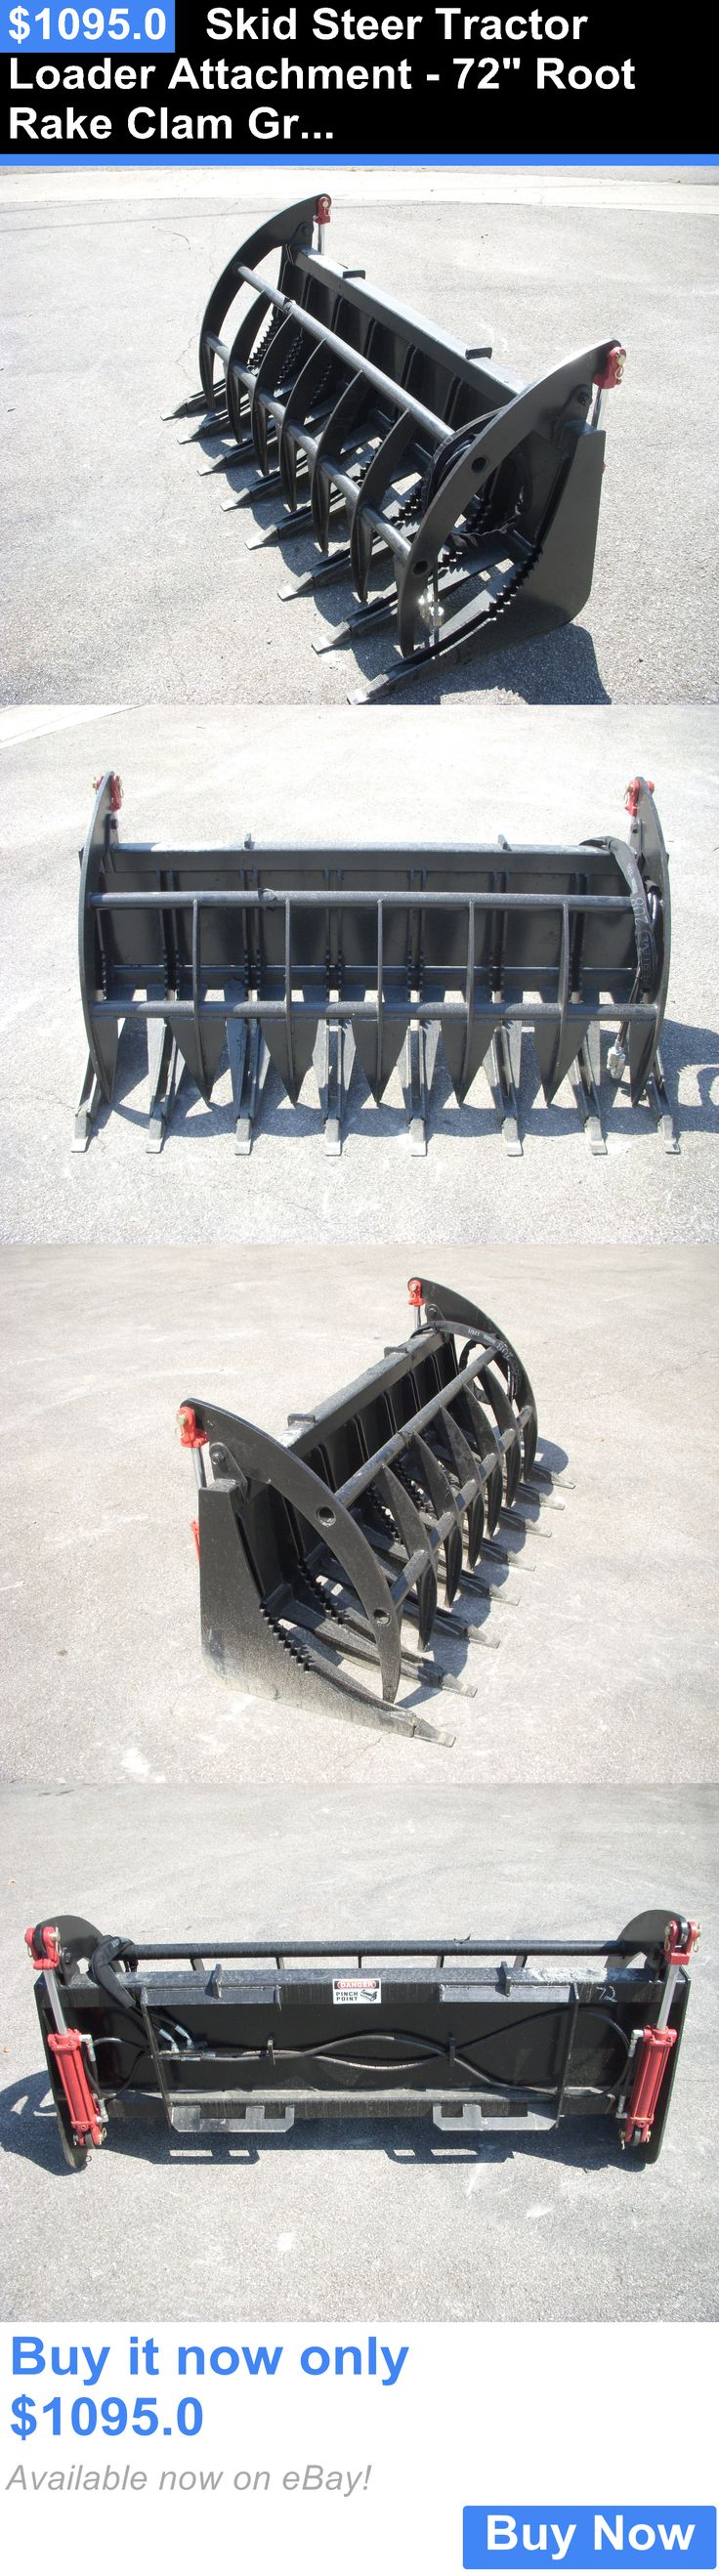 heavy equipment: Skid Steer Tractor Loader Attachment - 72 Root Rake Clam Grapple - Ship $199 BUY IT NOW ONLY: $1095.0